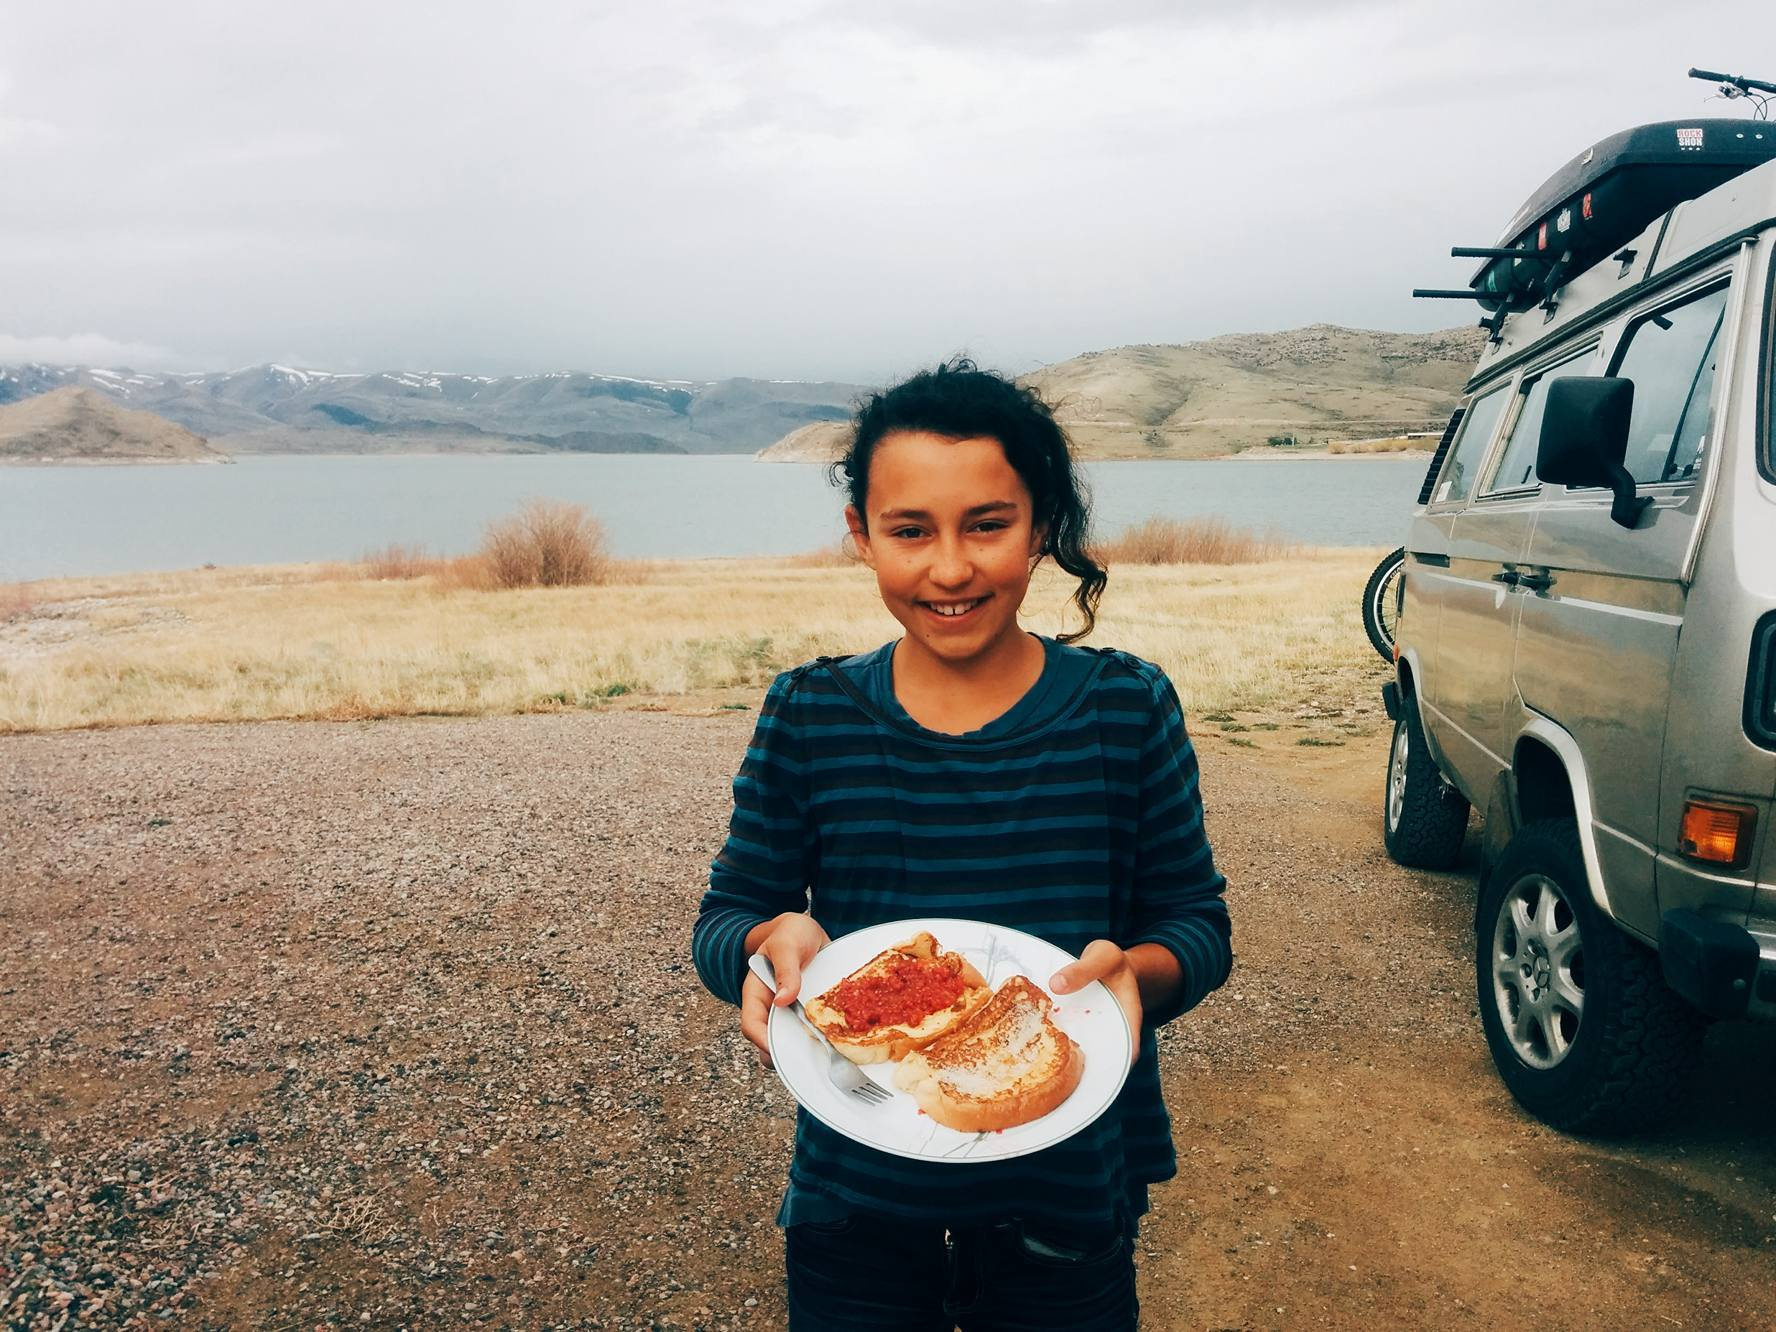 On Friday night, we camped at Clark Canyon Reservoir, near Dillon, Montana.  It's an awesome free camping spot . When we left, we stopped at our favorite Patagonia Outlet in Dillon and found some really good deals.